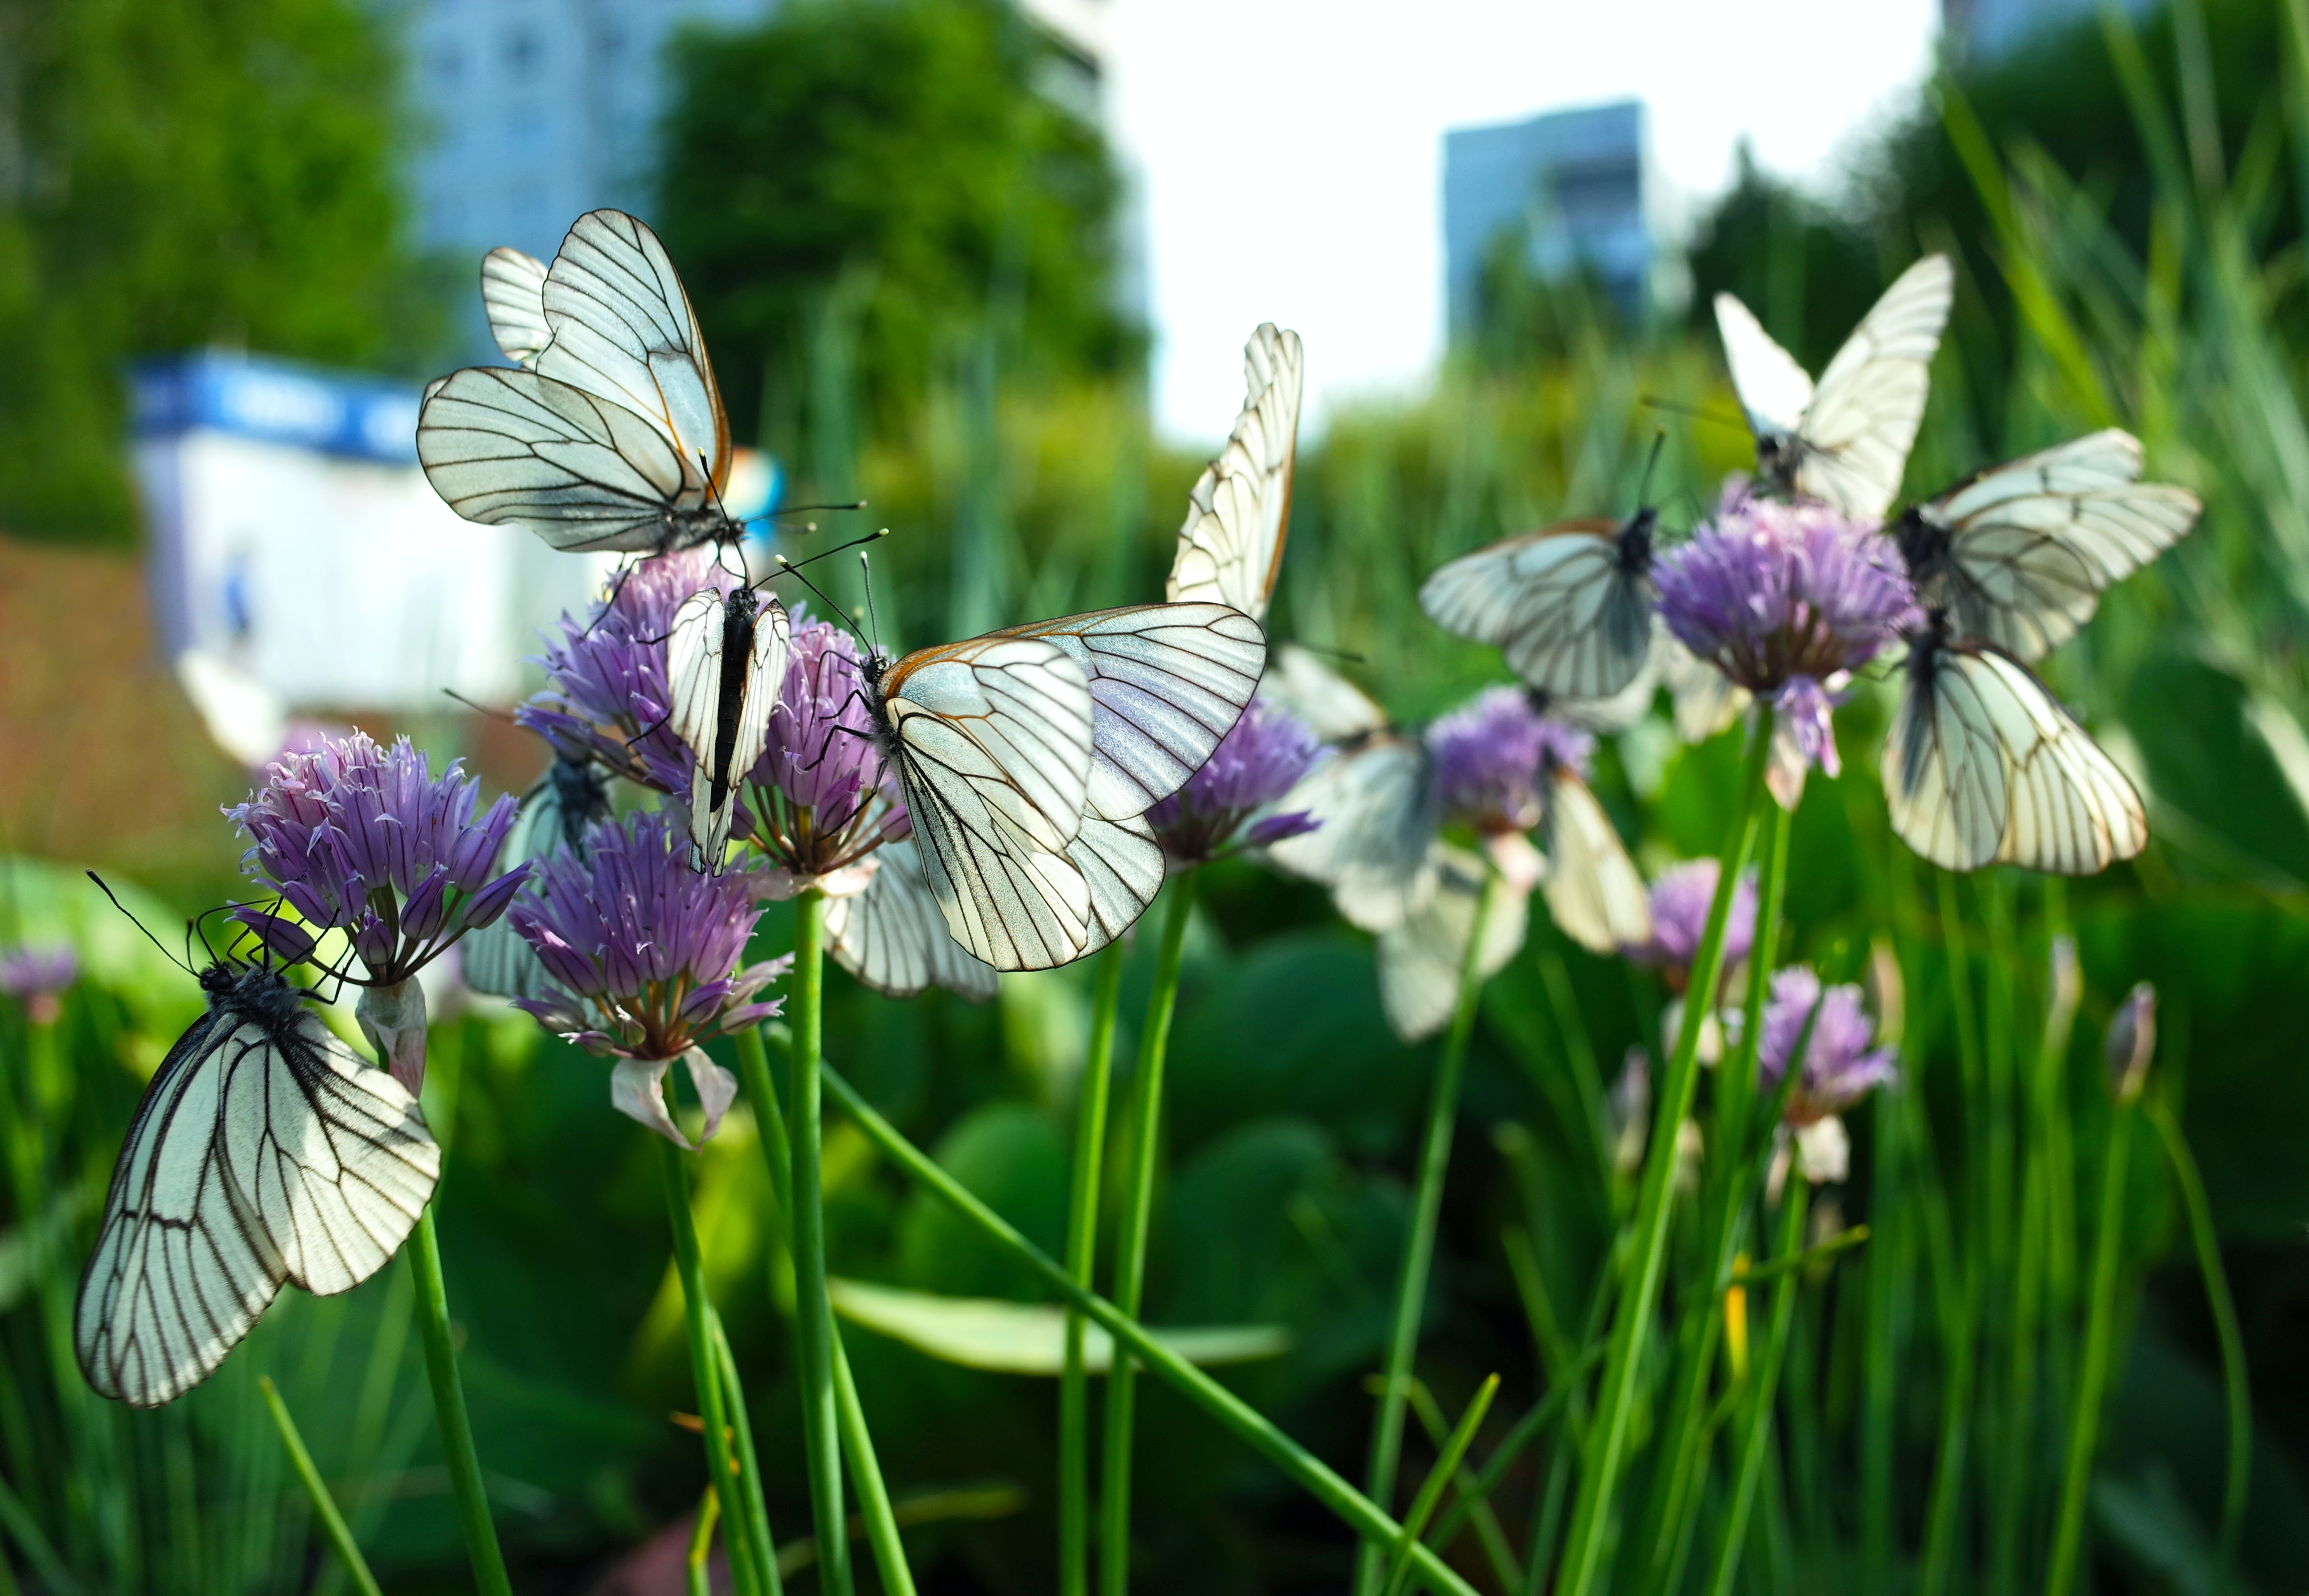 Bees and butterflies are under threat from urbanisation – here's how city-dwellers can help